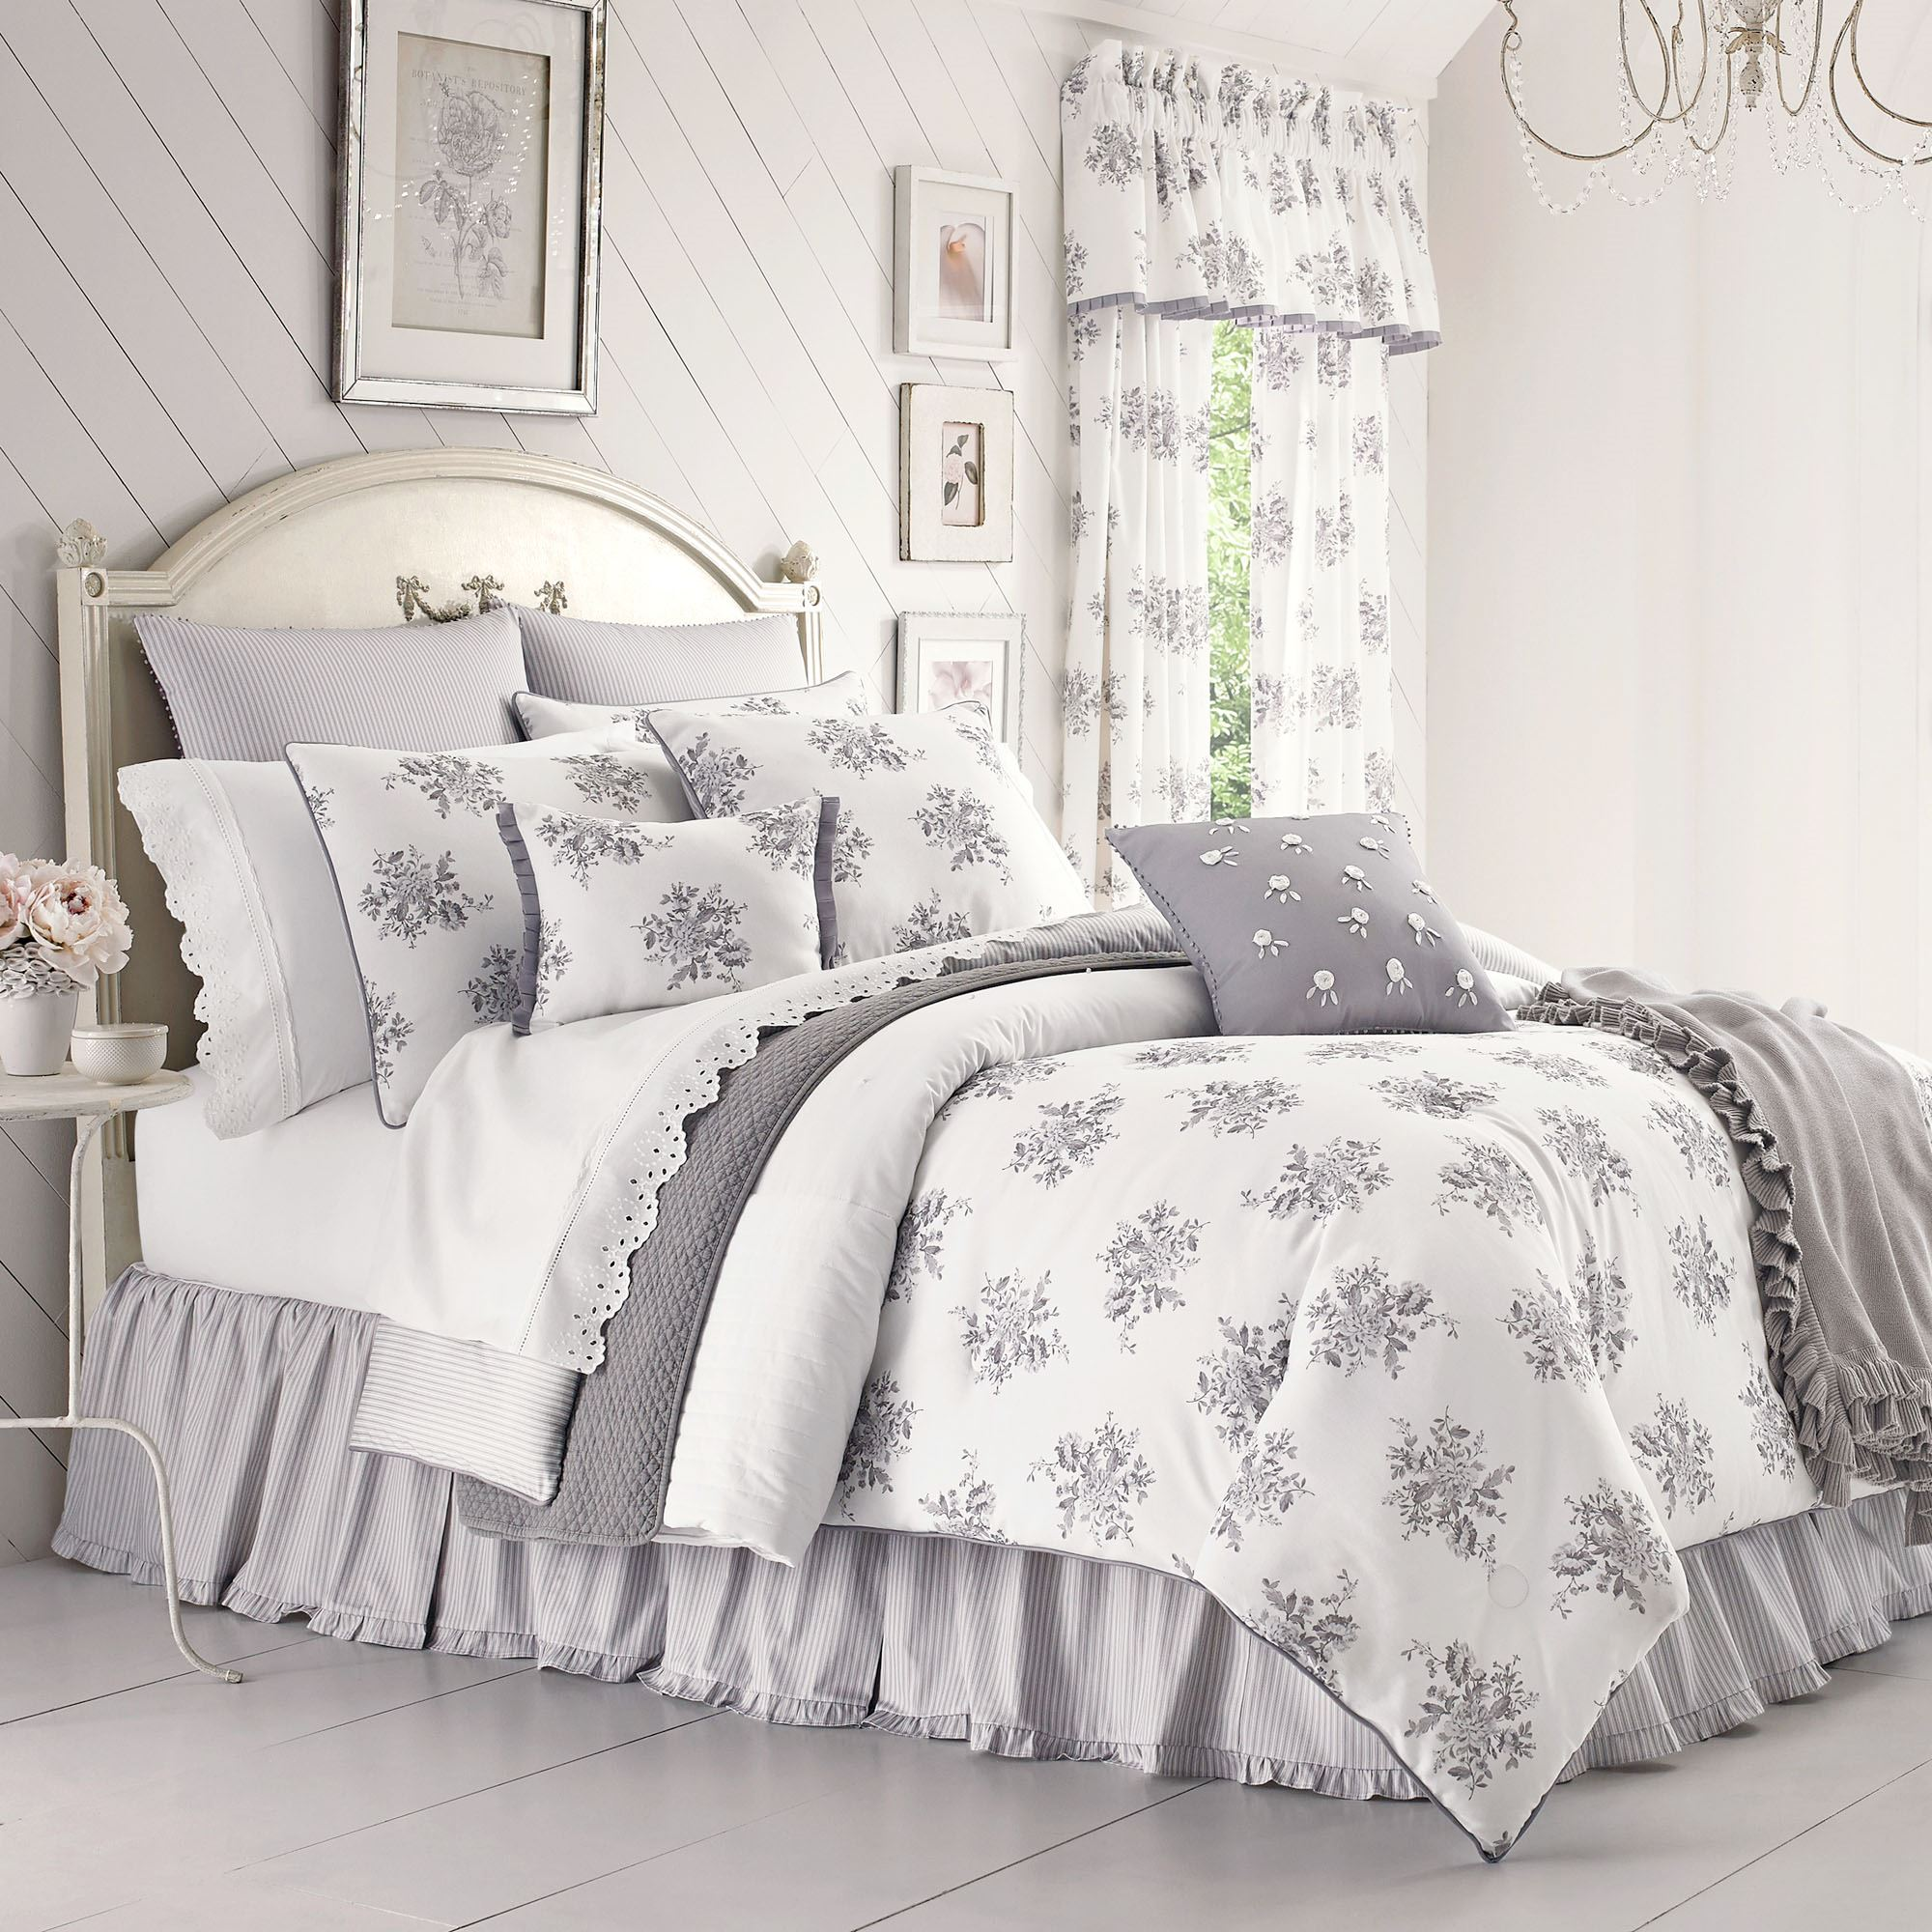 Sabrina Gray And White Vintage Floral Comforter Bedding By